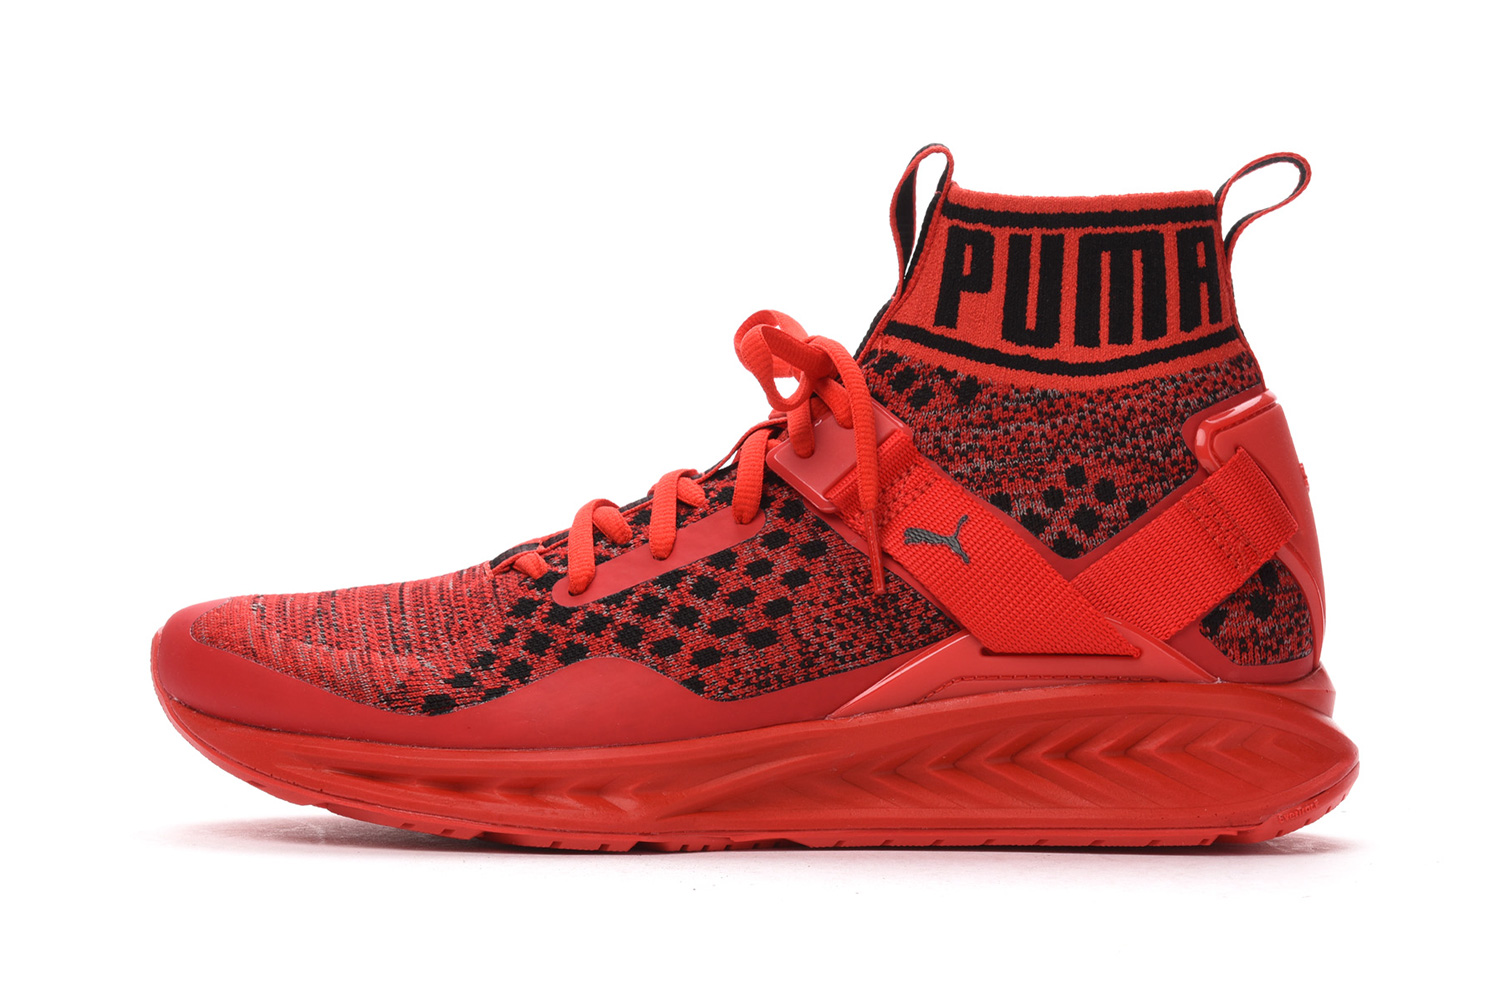 The PUMA Ignite evoKNIT Now Comes in Red